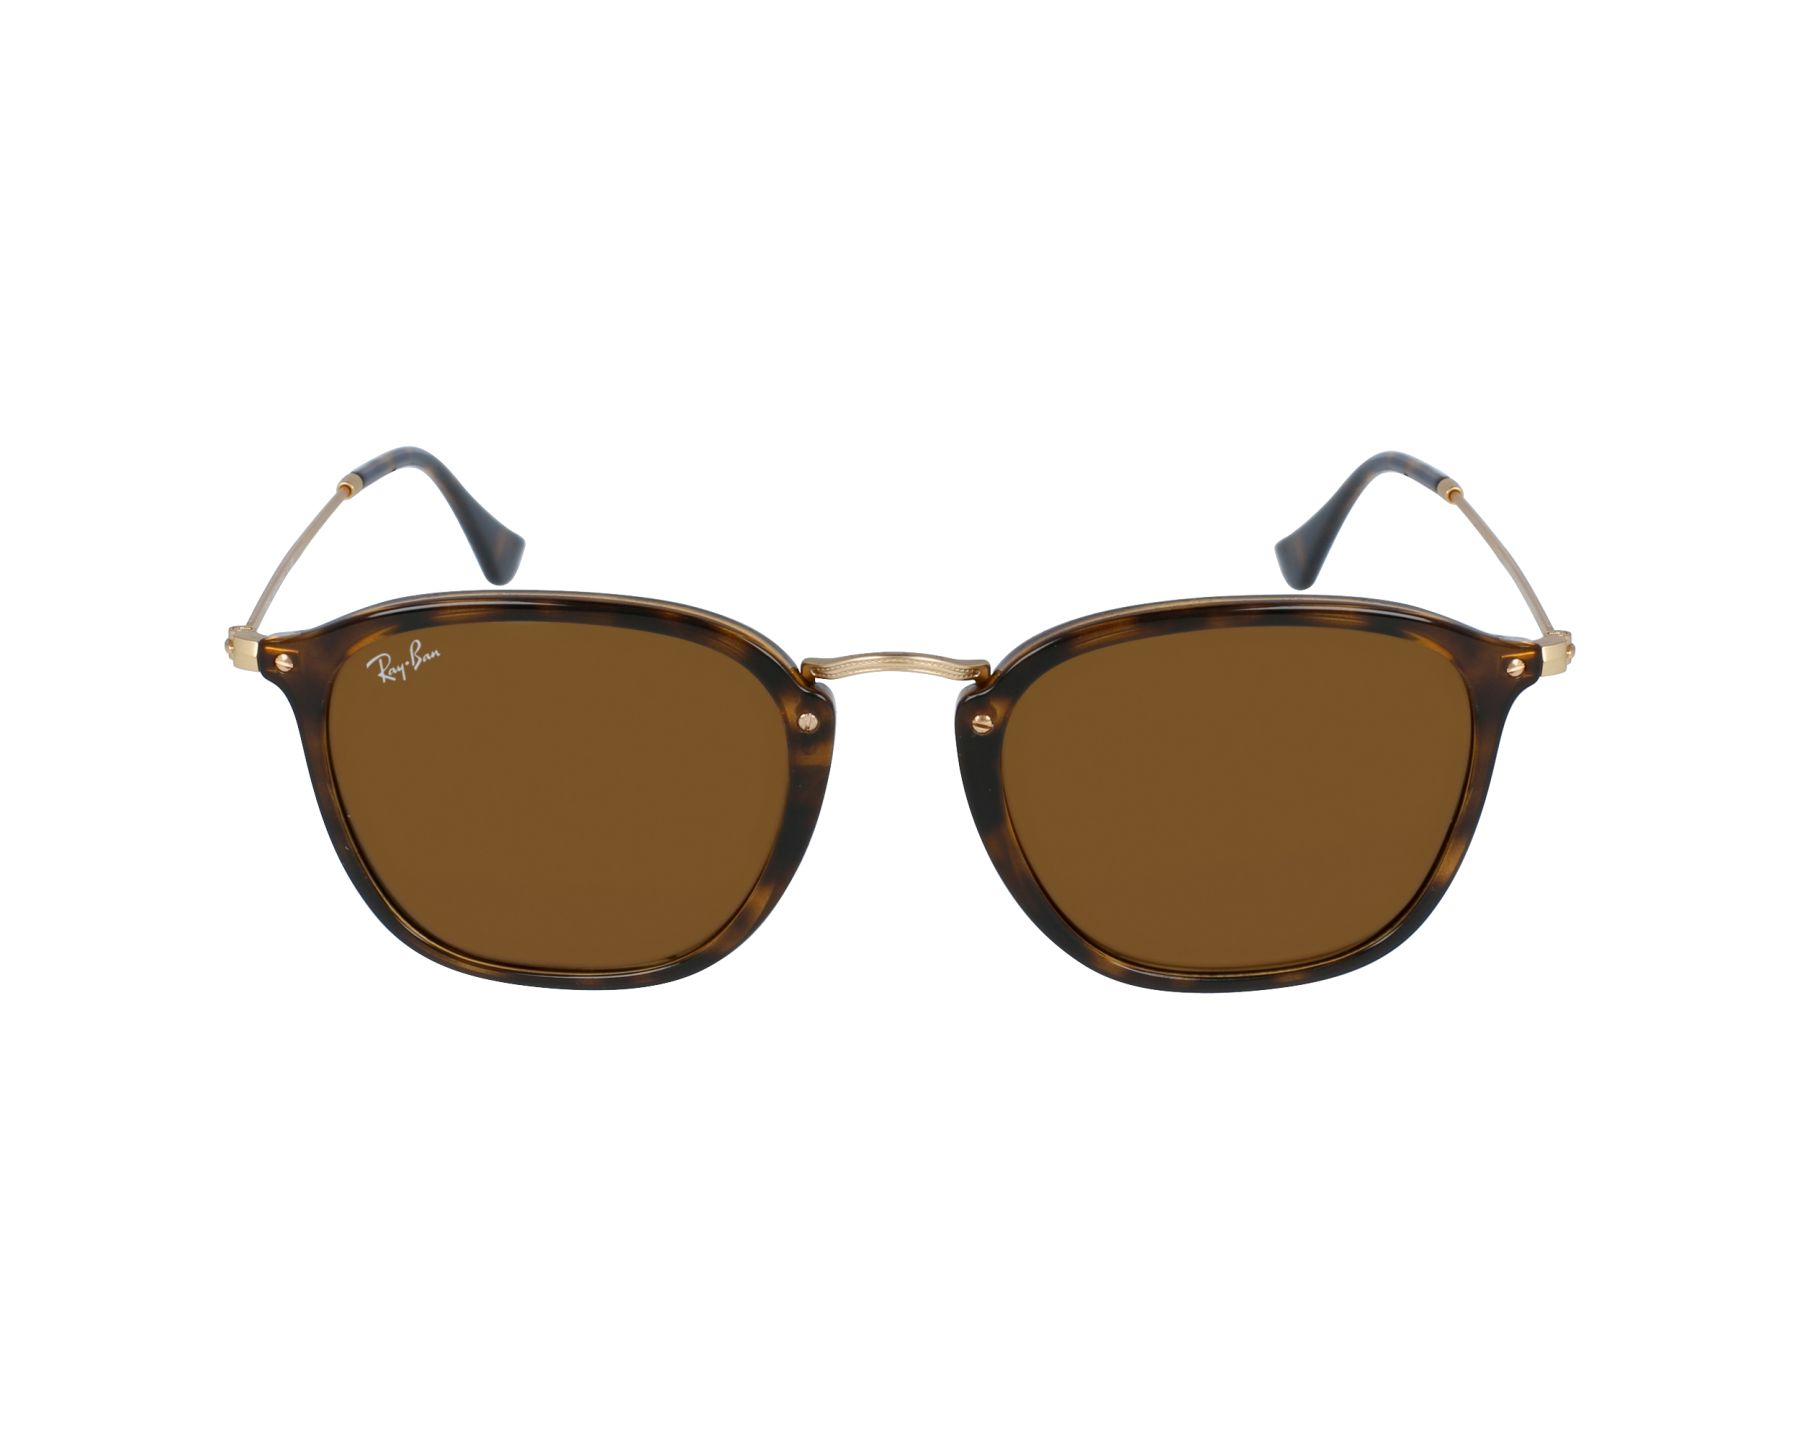 Ray Ban Rb2448n 710 51 - Bitterroot Public Library 01ba98227754